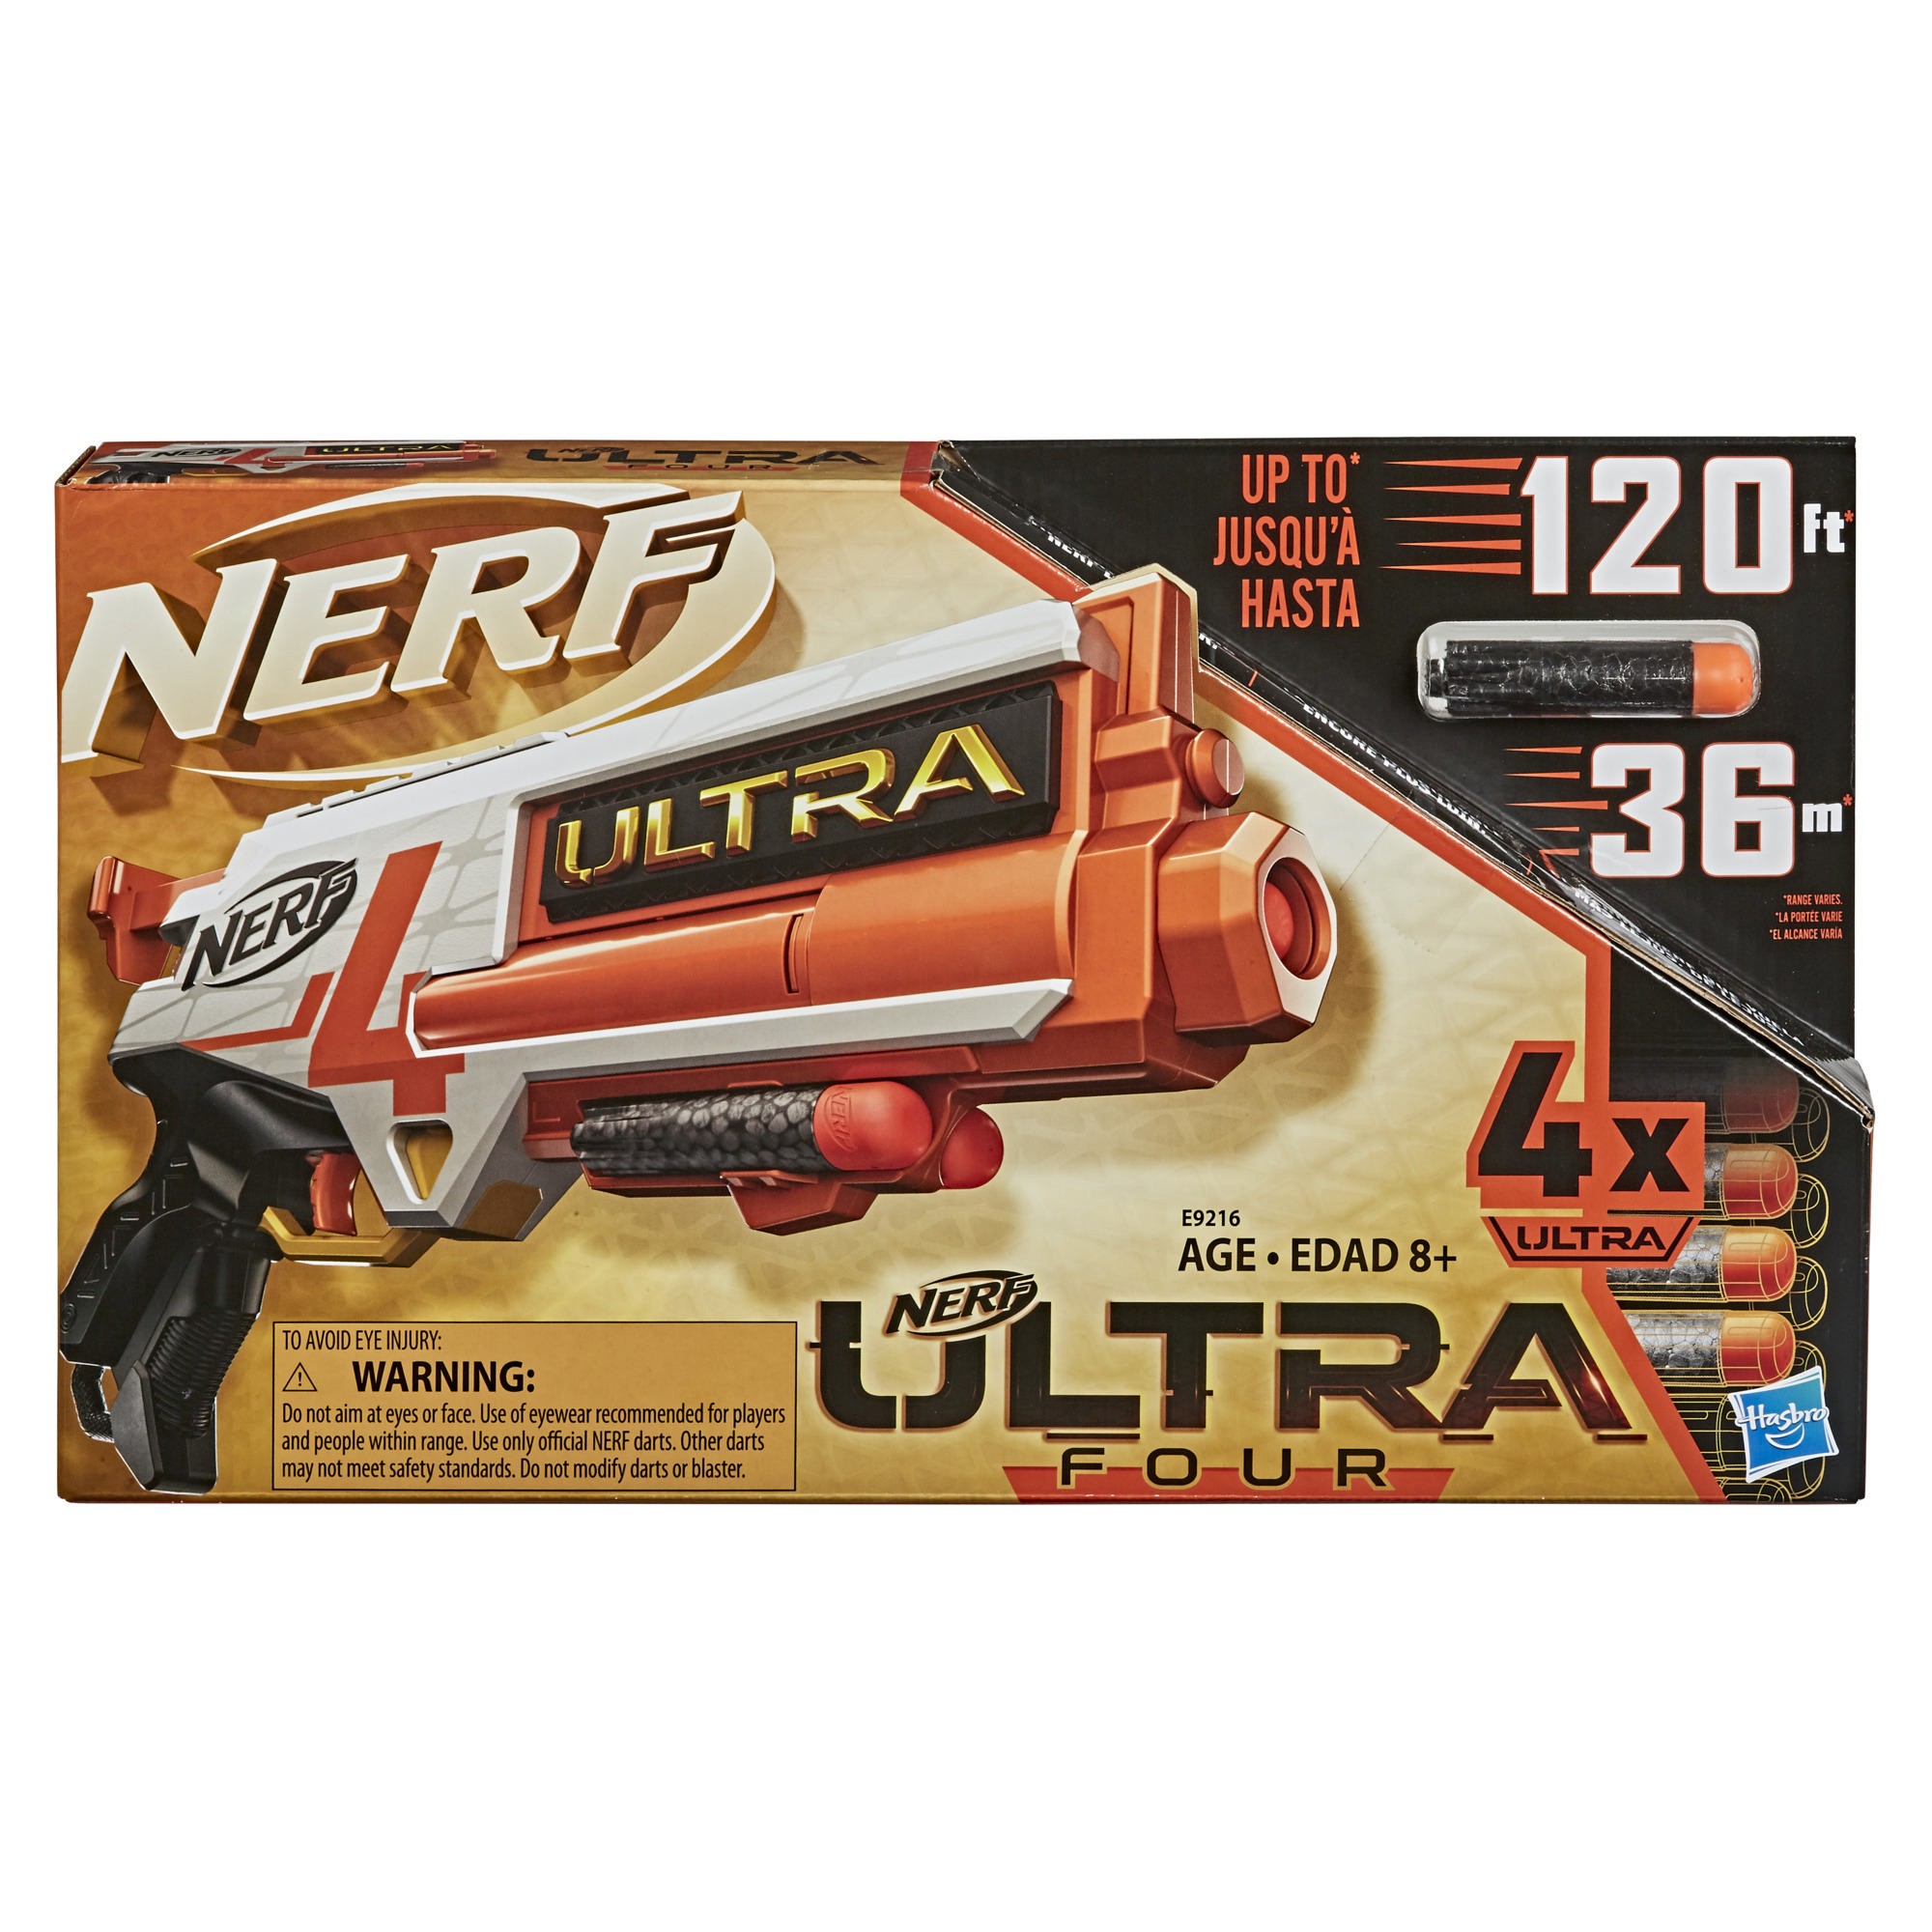 Nerf Ultra Four Dart Blaster -- 4 Nerf Ultra Darts, Single-Shot Blasting, Compatible Only with Nerf Ultra Darts